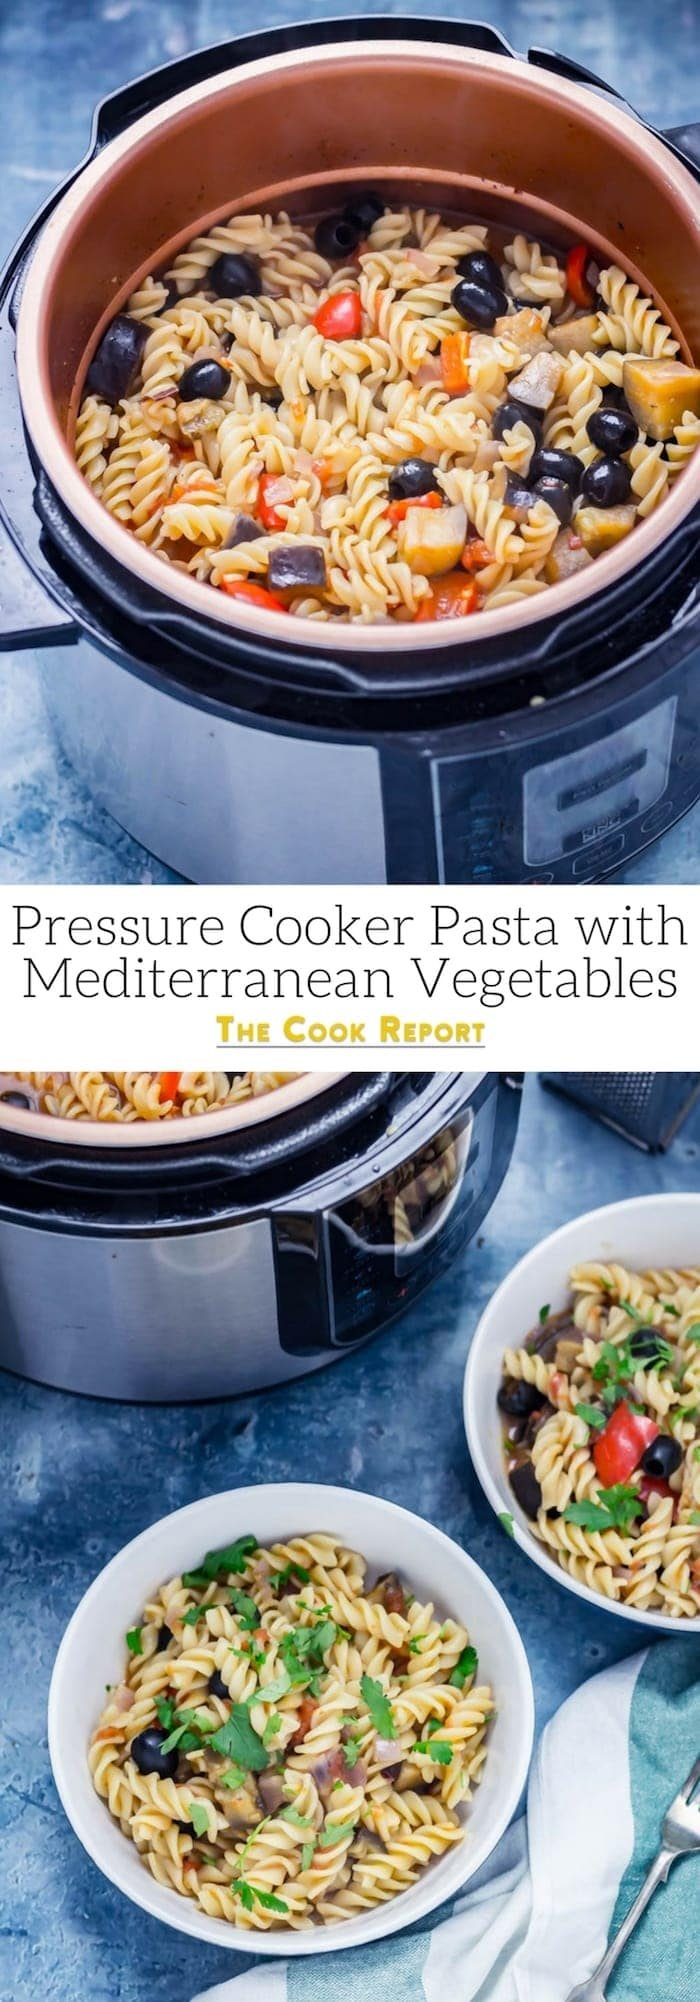 This pressure cooker pasta is so simple and is full of mediterranean flavour! Make it in an instant pot or electric pressure cooker and have dinner on the table in a matter of minutes. #pressurecooker #instantpot #onepotpasta #mediterraneanpasta #mediterraneanvegetables